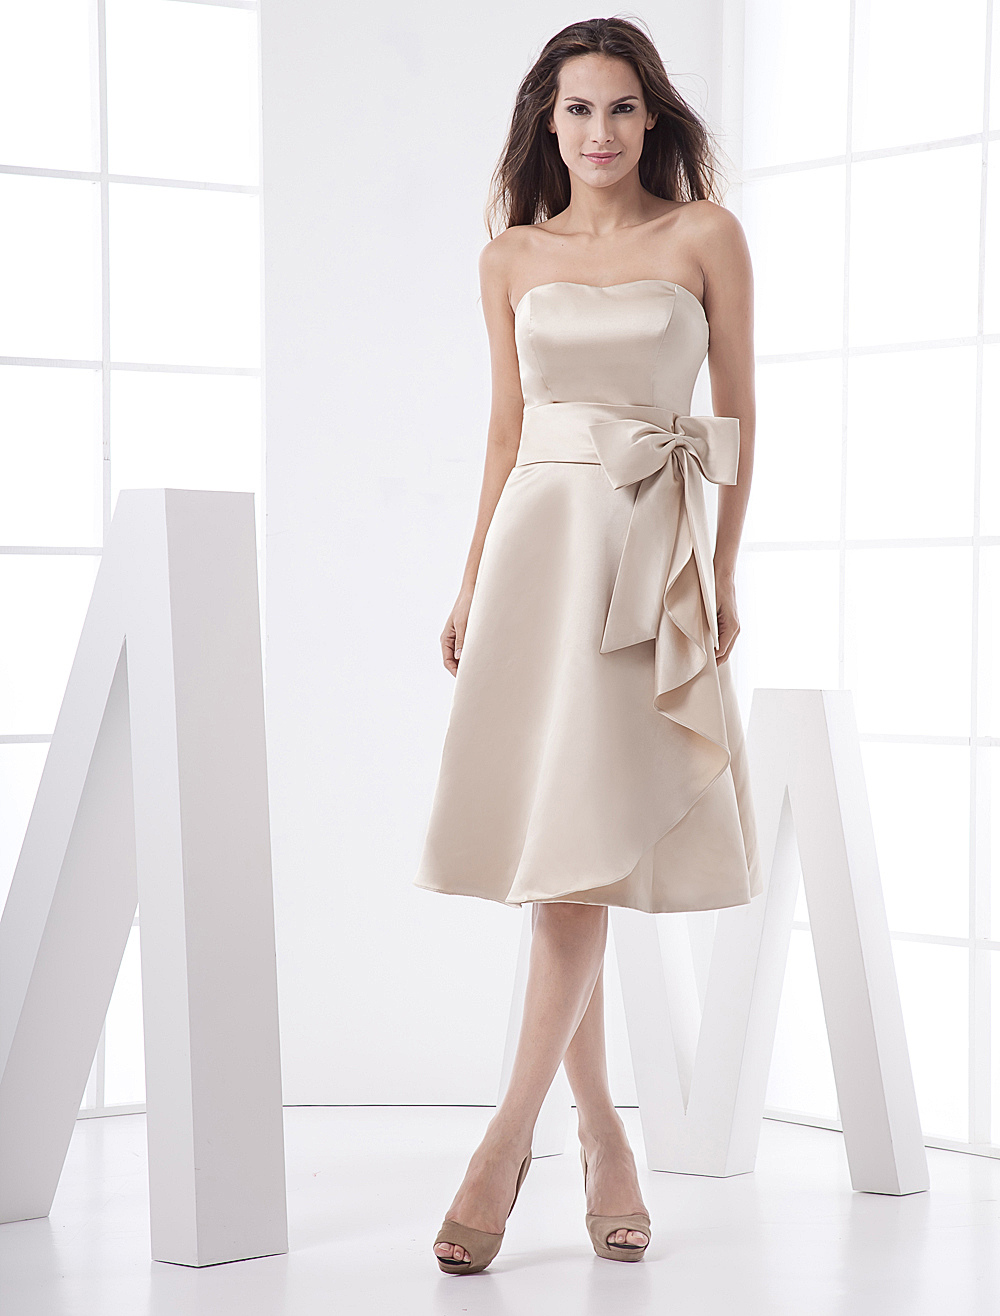 Classic Strapless Sash Bow Tea Length Satin Gold Champagne Bridesmaid Dress